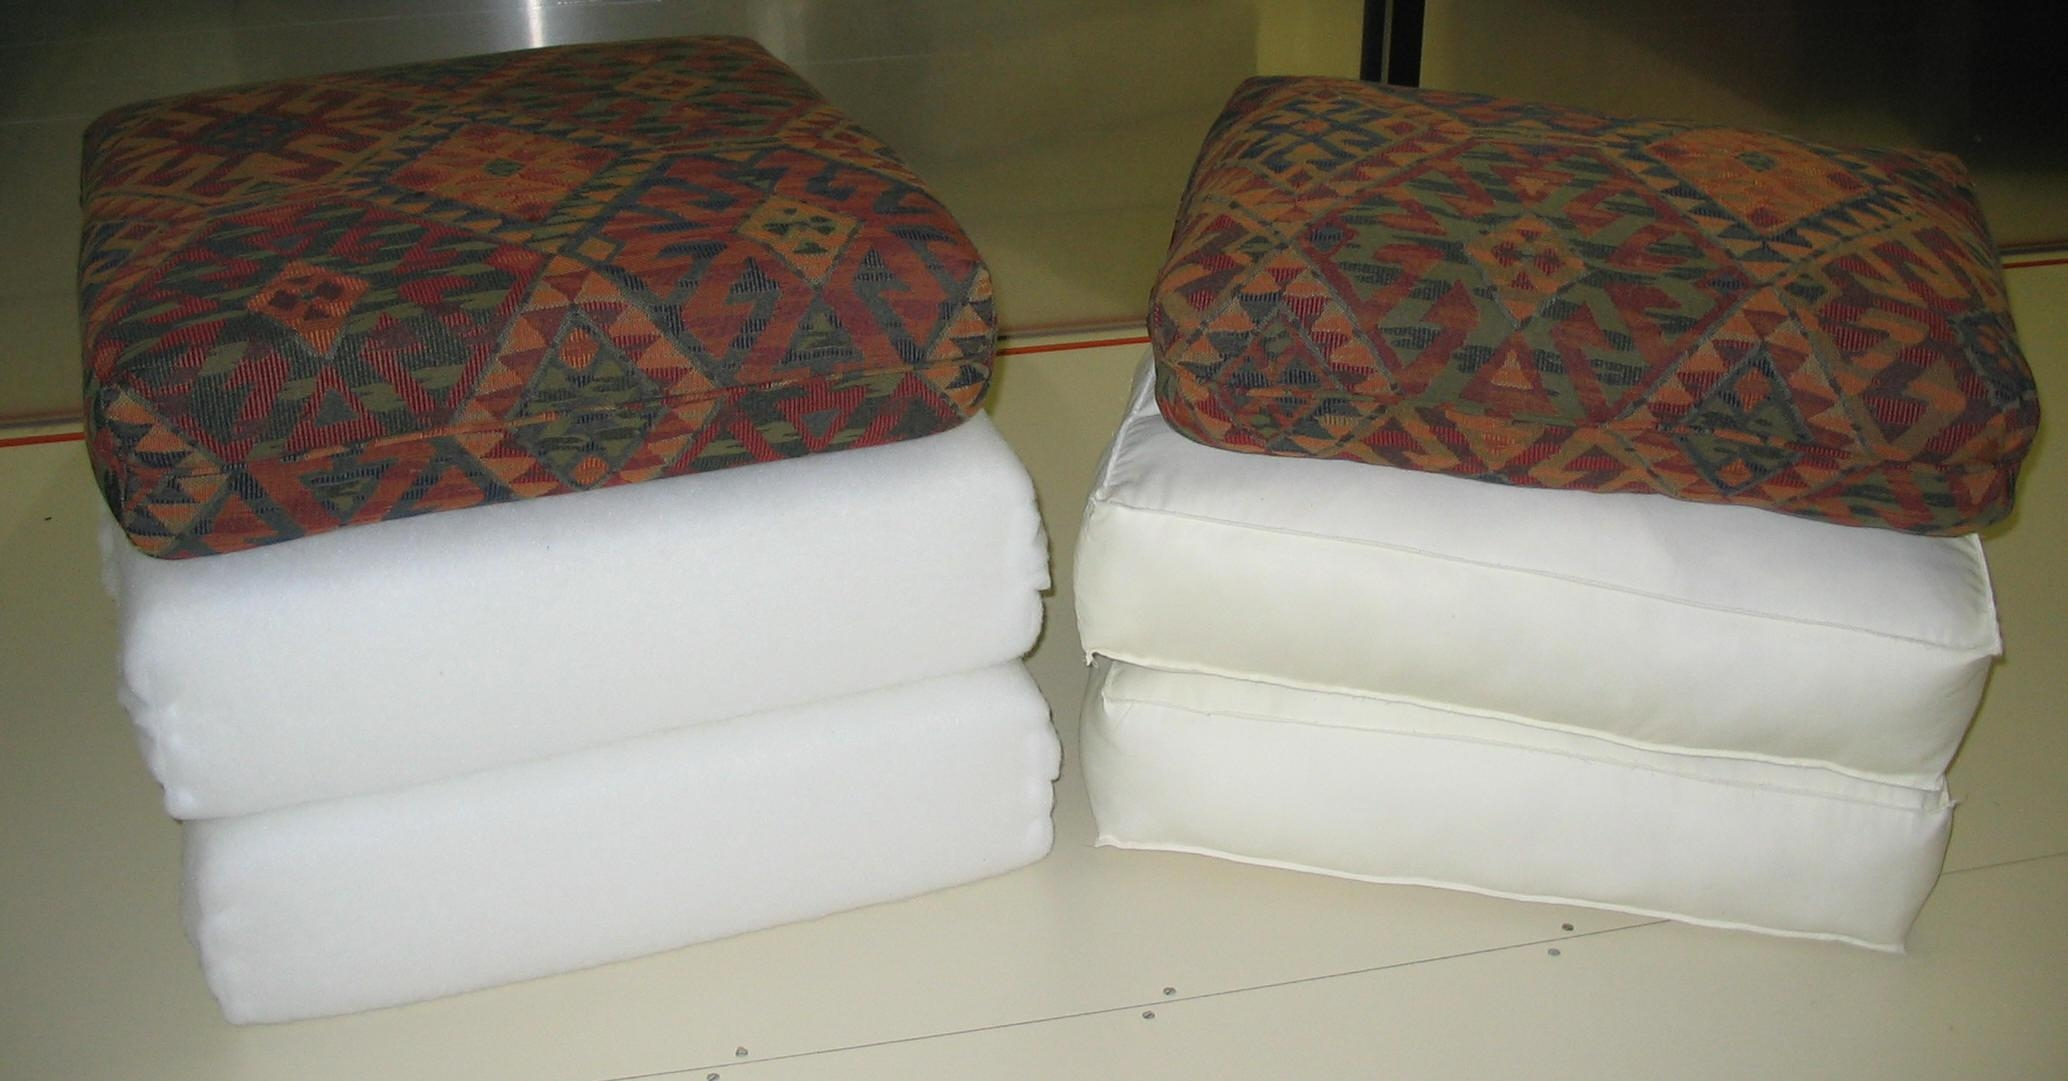 Cut To Size Foam, Sofa Replacement, Cushion Replacement, Seat Regarding Individual Couch Seat Cushion Covers (View 9 of 20)